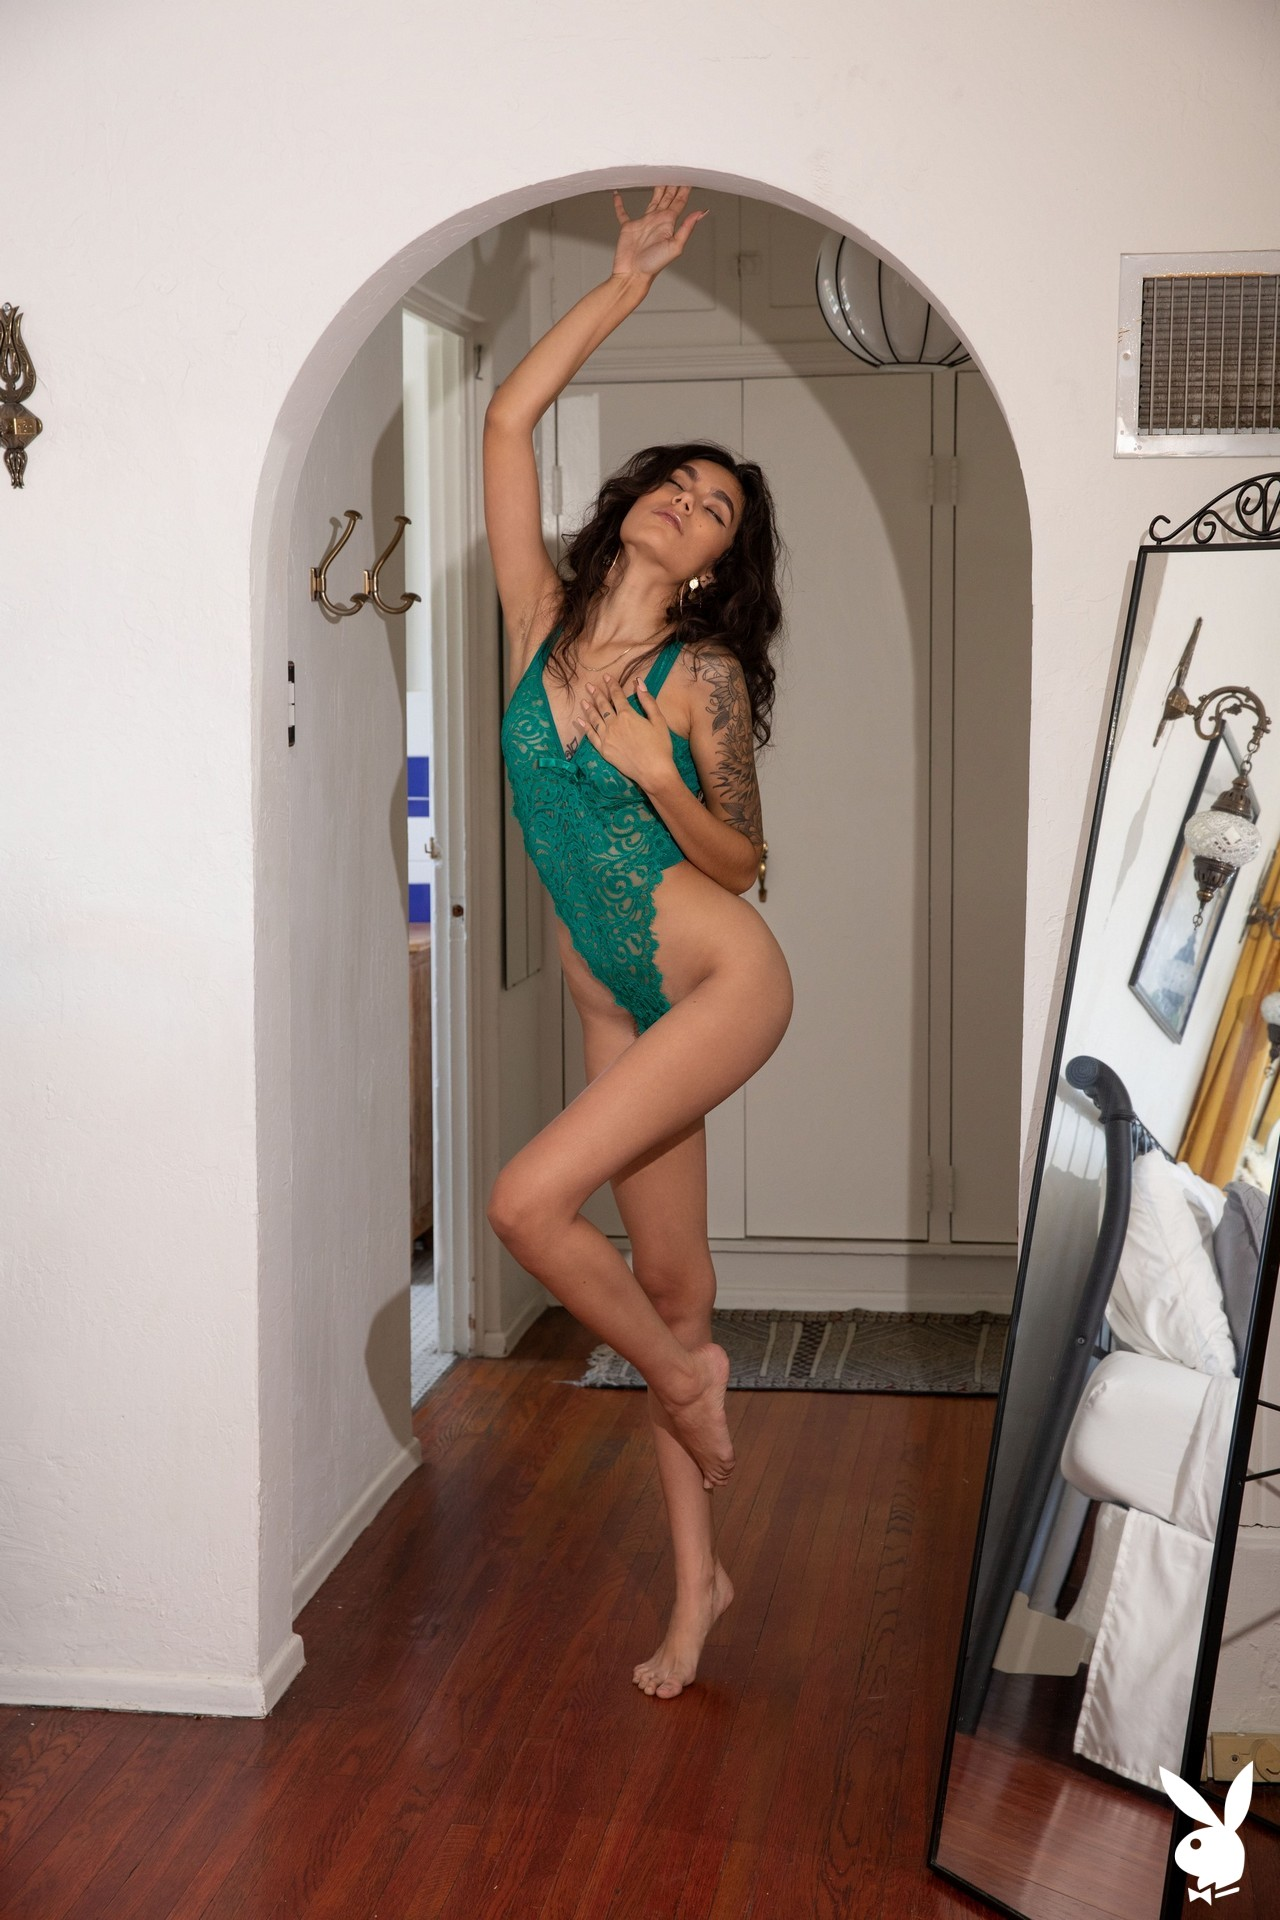 Hades In Genuine Attraction Playboy Plus (8)